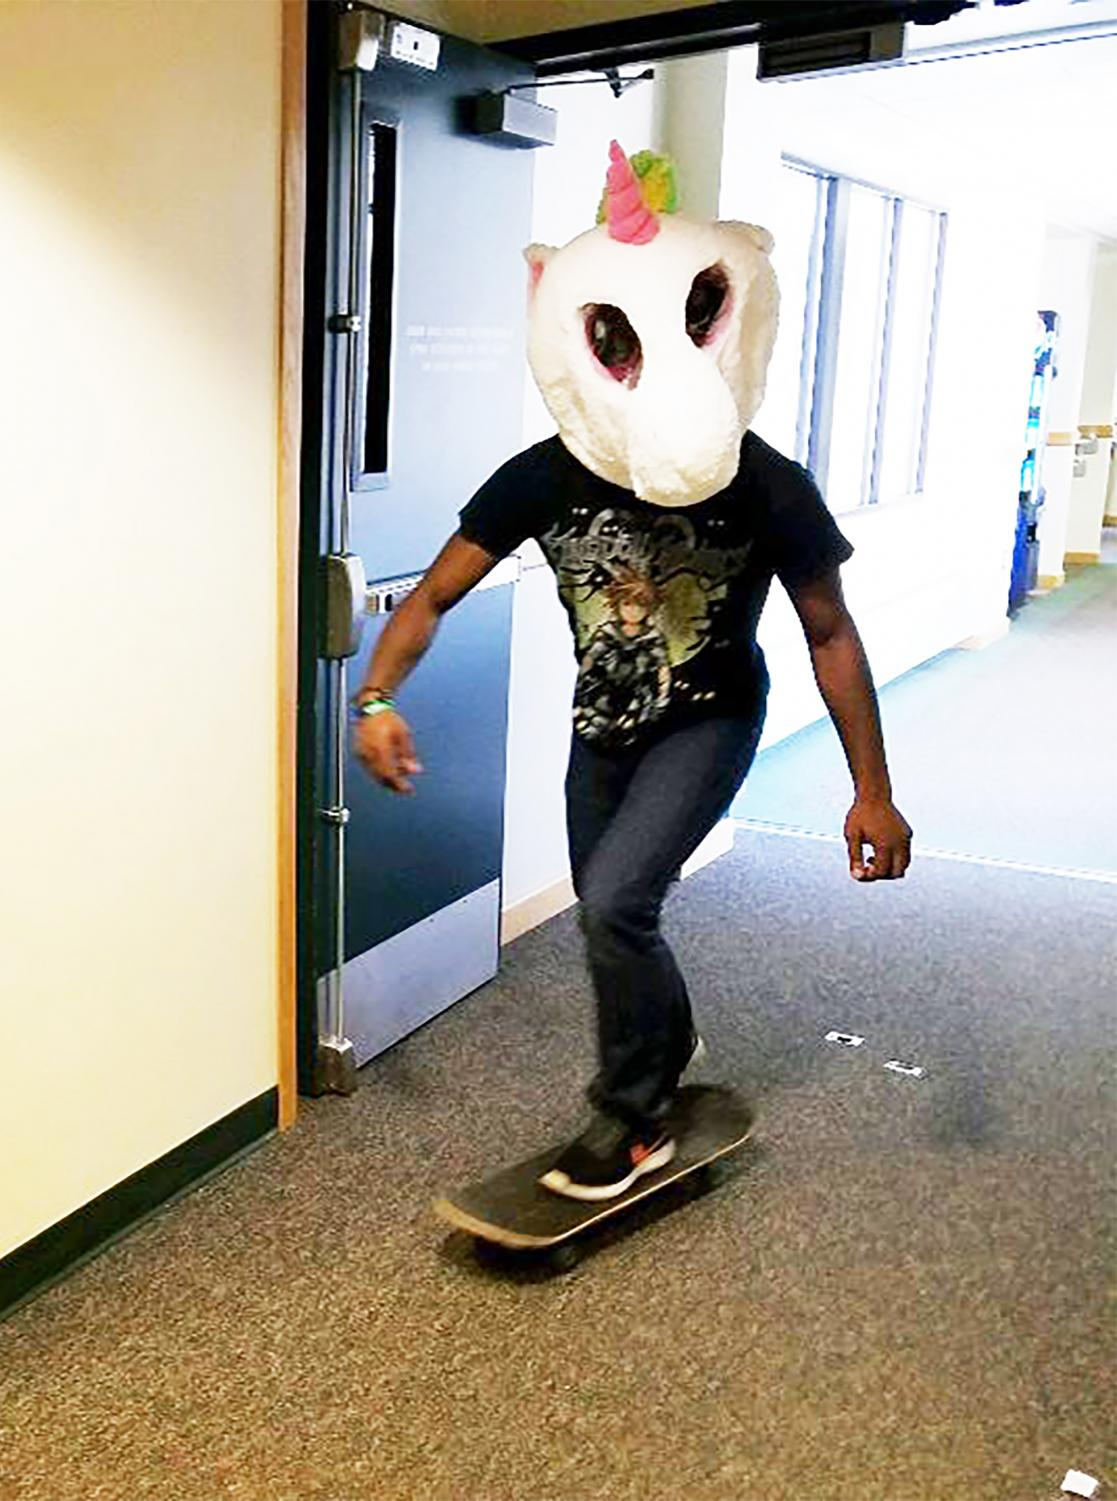 Senior Demar Watson rides a skateboard with a unicorn head he won from the Pumpkin Hunt sponsored by Programming Board members.